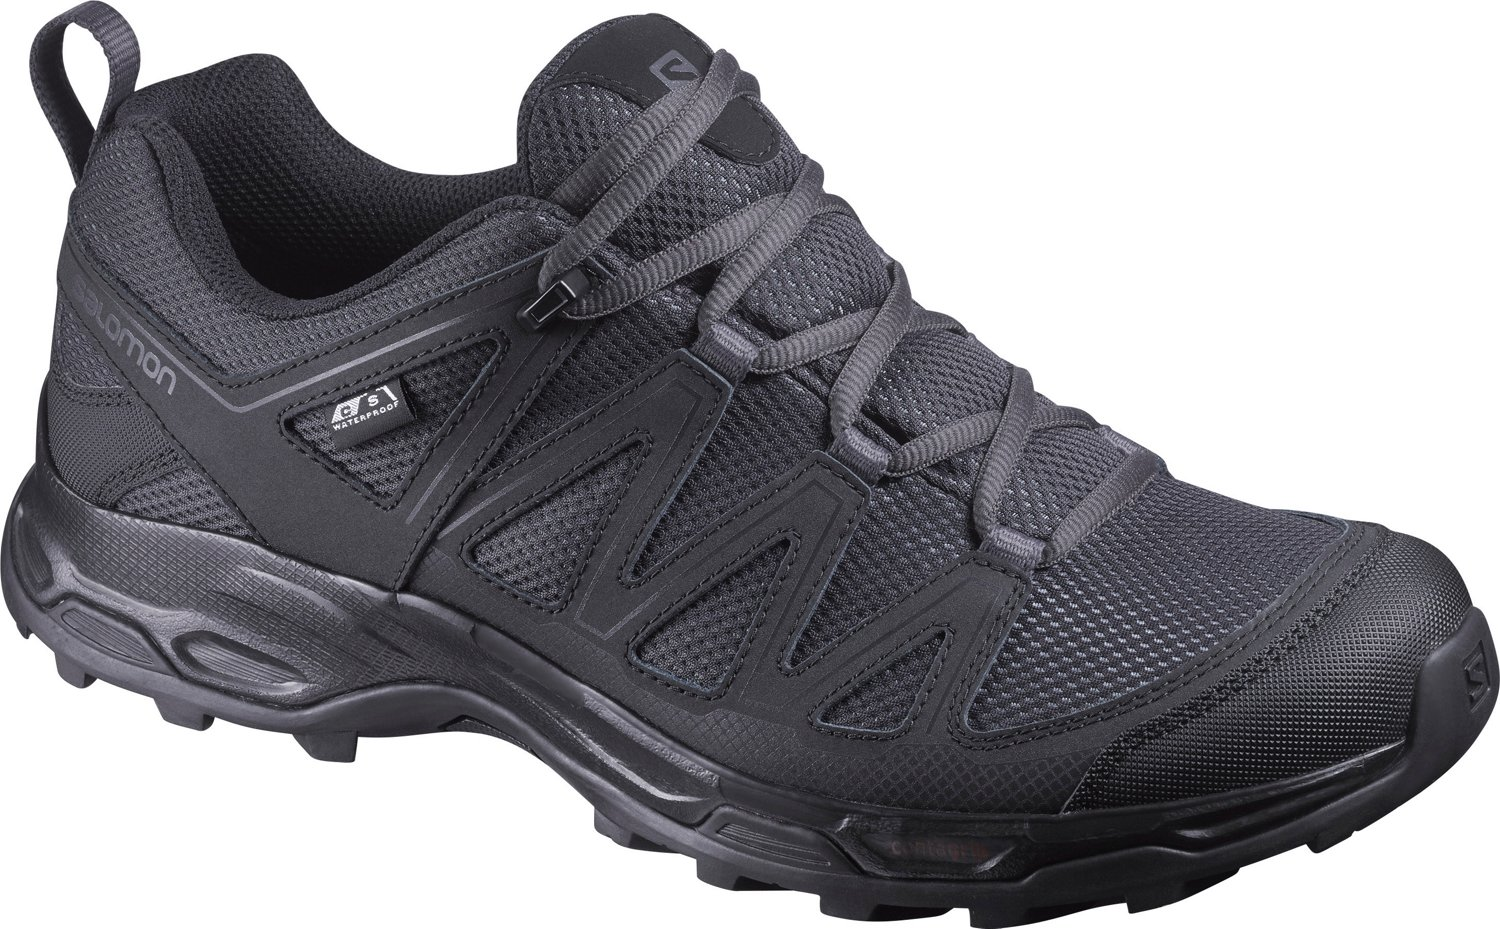 272bf424bc5a Salomon Men s Low Pathfinder CSWP Hiking Shoes